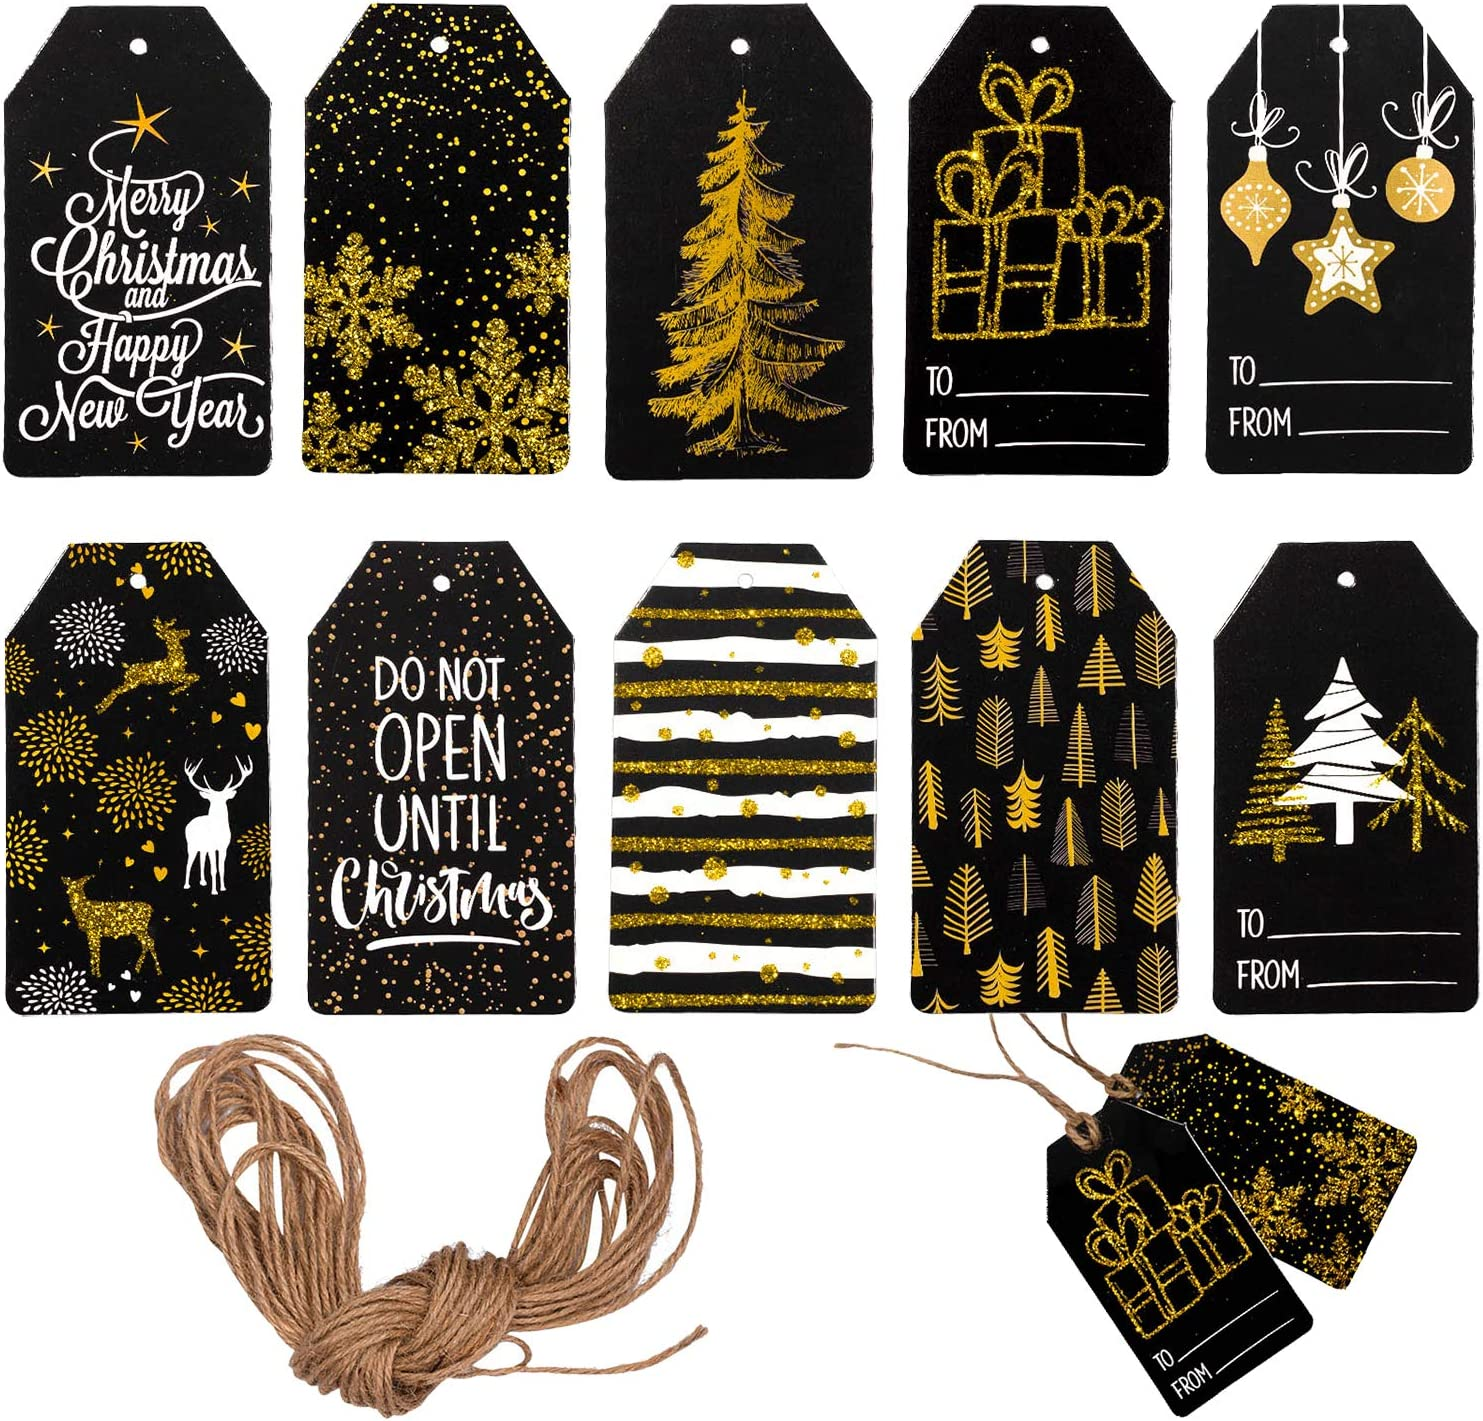 Whaline Christmas Paper Gift Tags Glitter Black Merry Christmas Tags with Jute Twine 10 Designs Holiday Hanging Labels Name Tags for Winter Xmas DIY Gifts Party Favor Decoration, 100 Pack